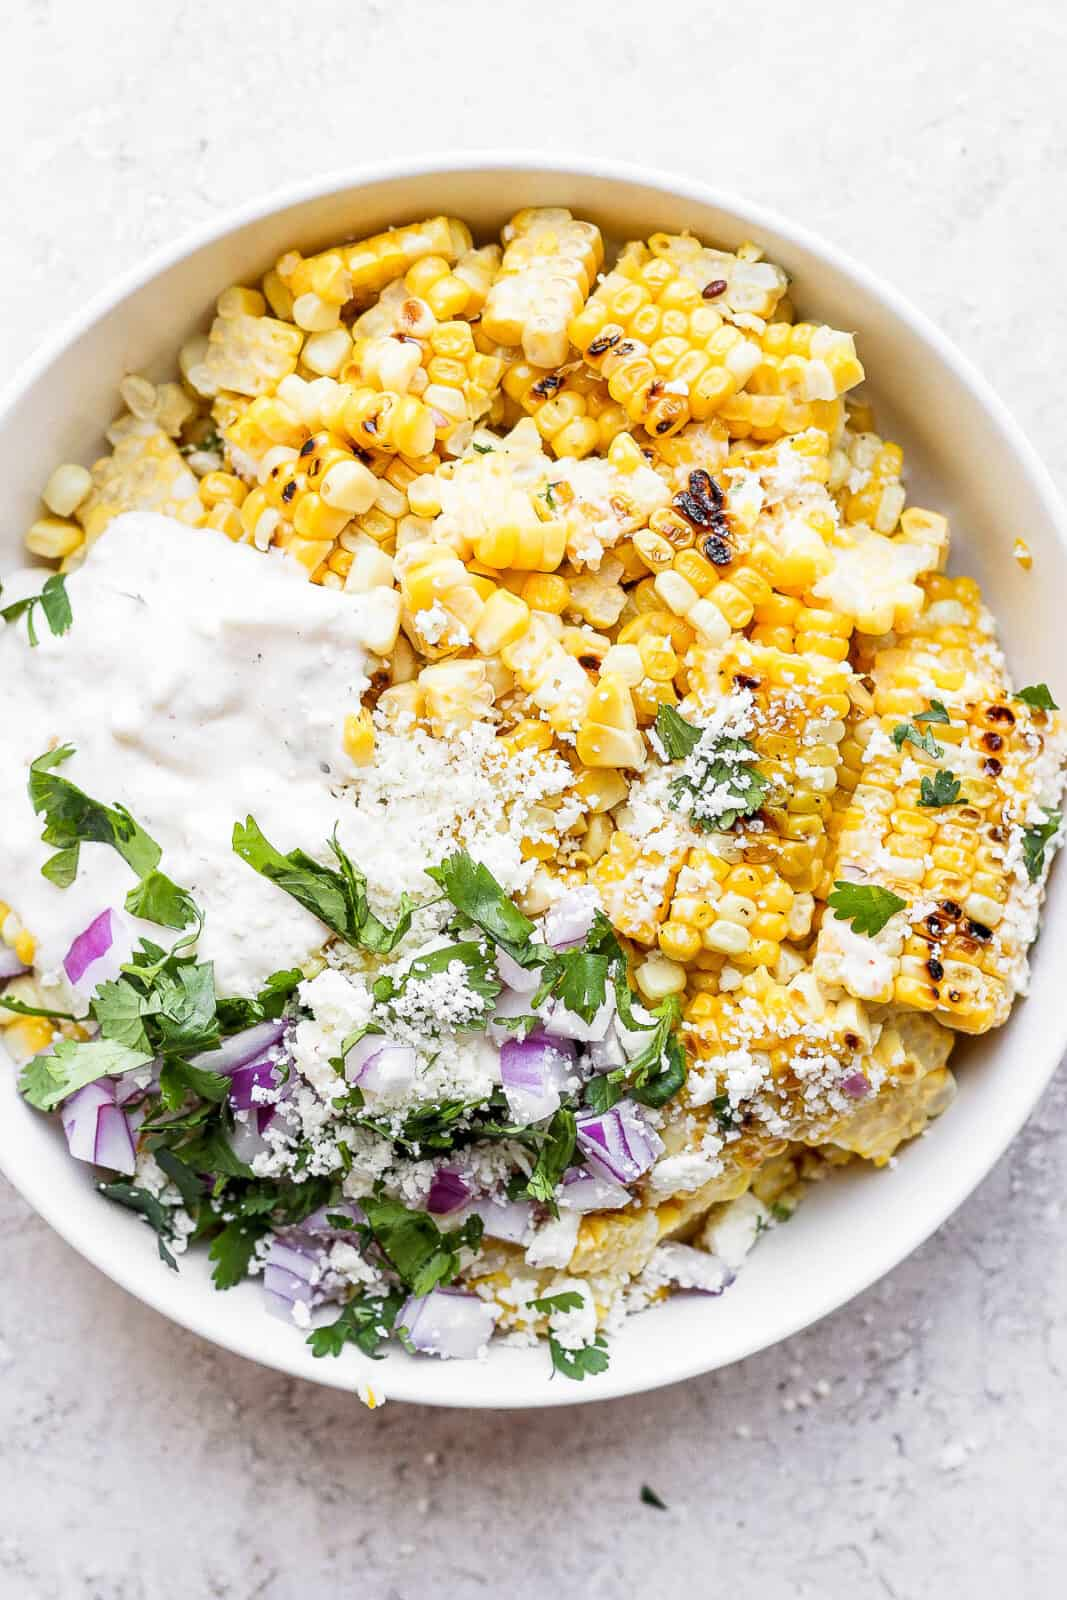 Mexican street corn salad in a bowl.